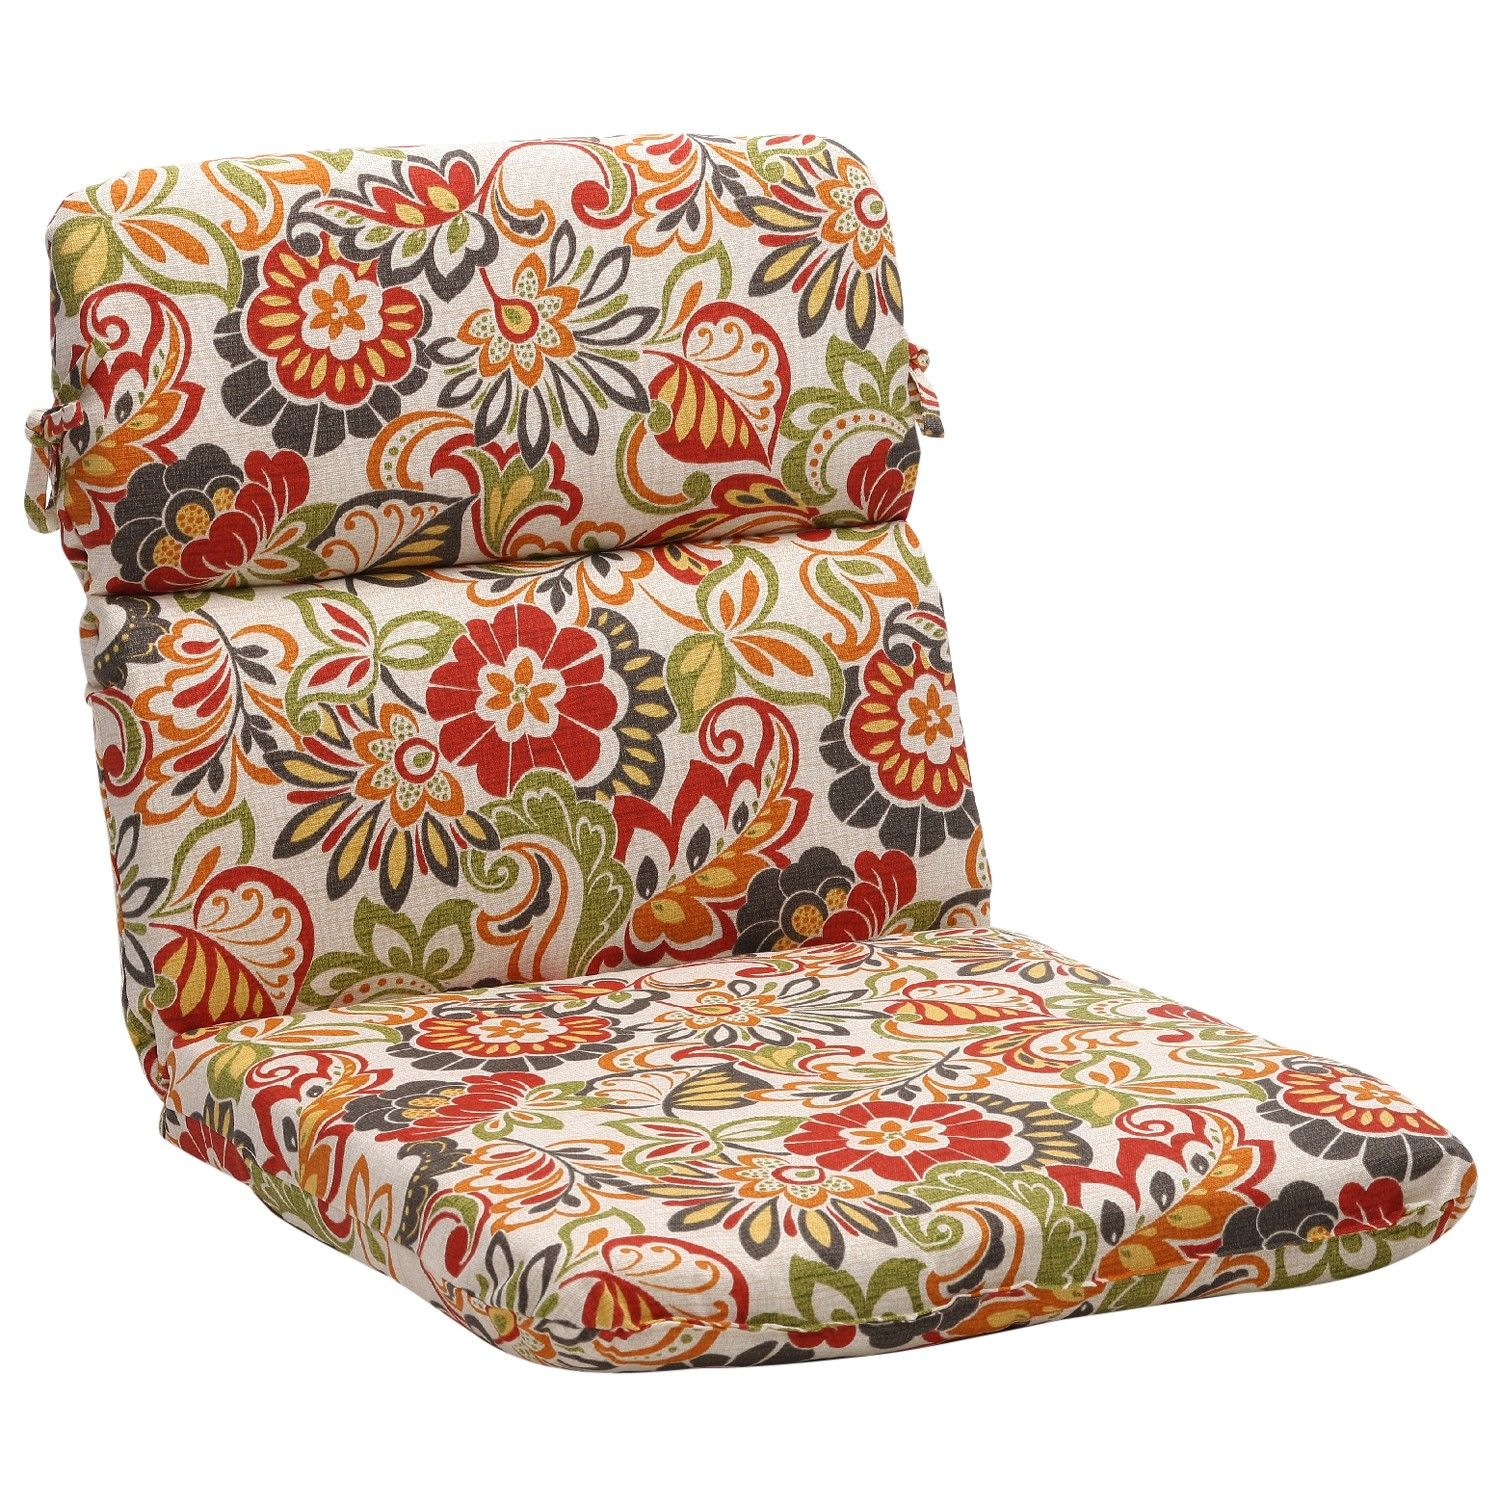 Zoe Multicolor Rounded Chair Cushion Patio cushions